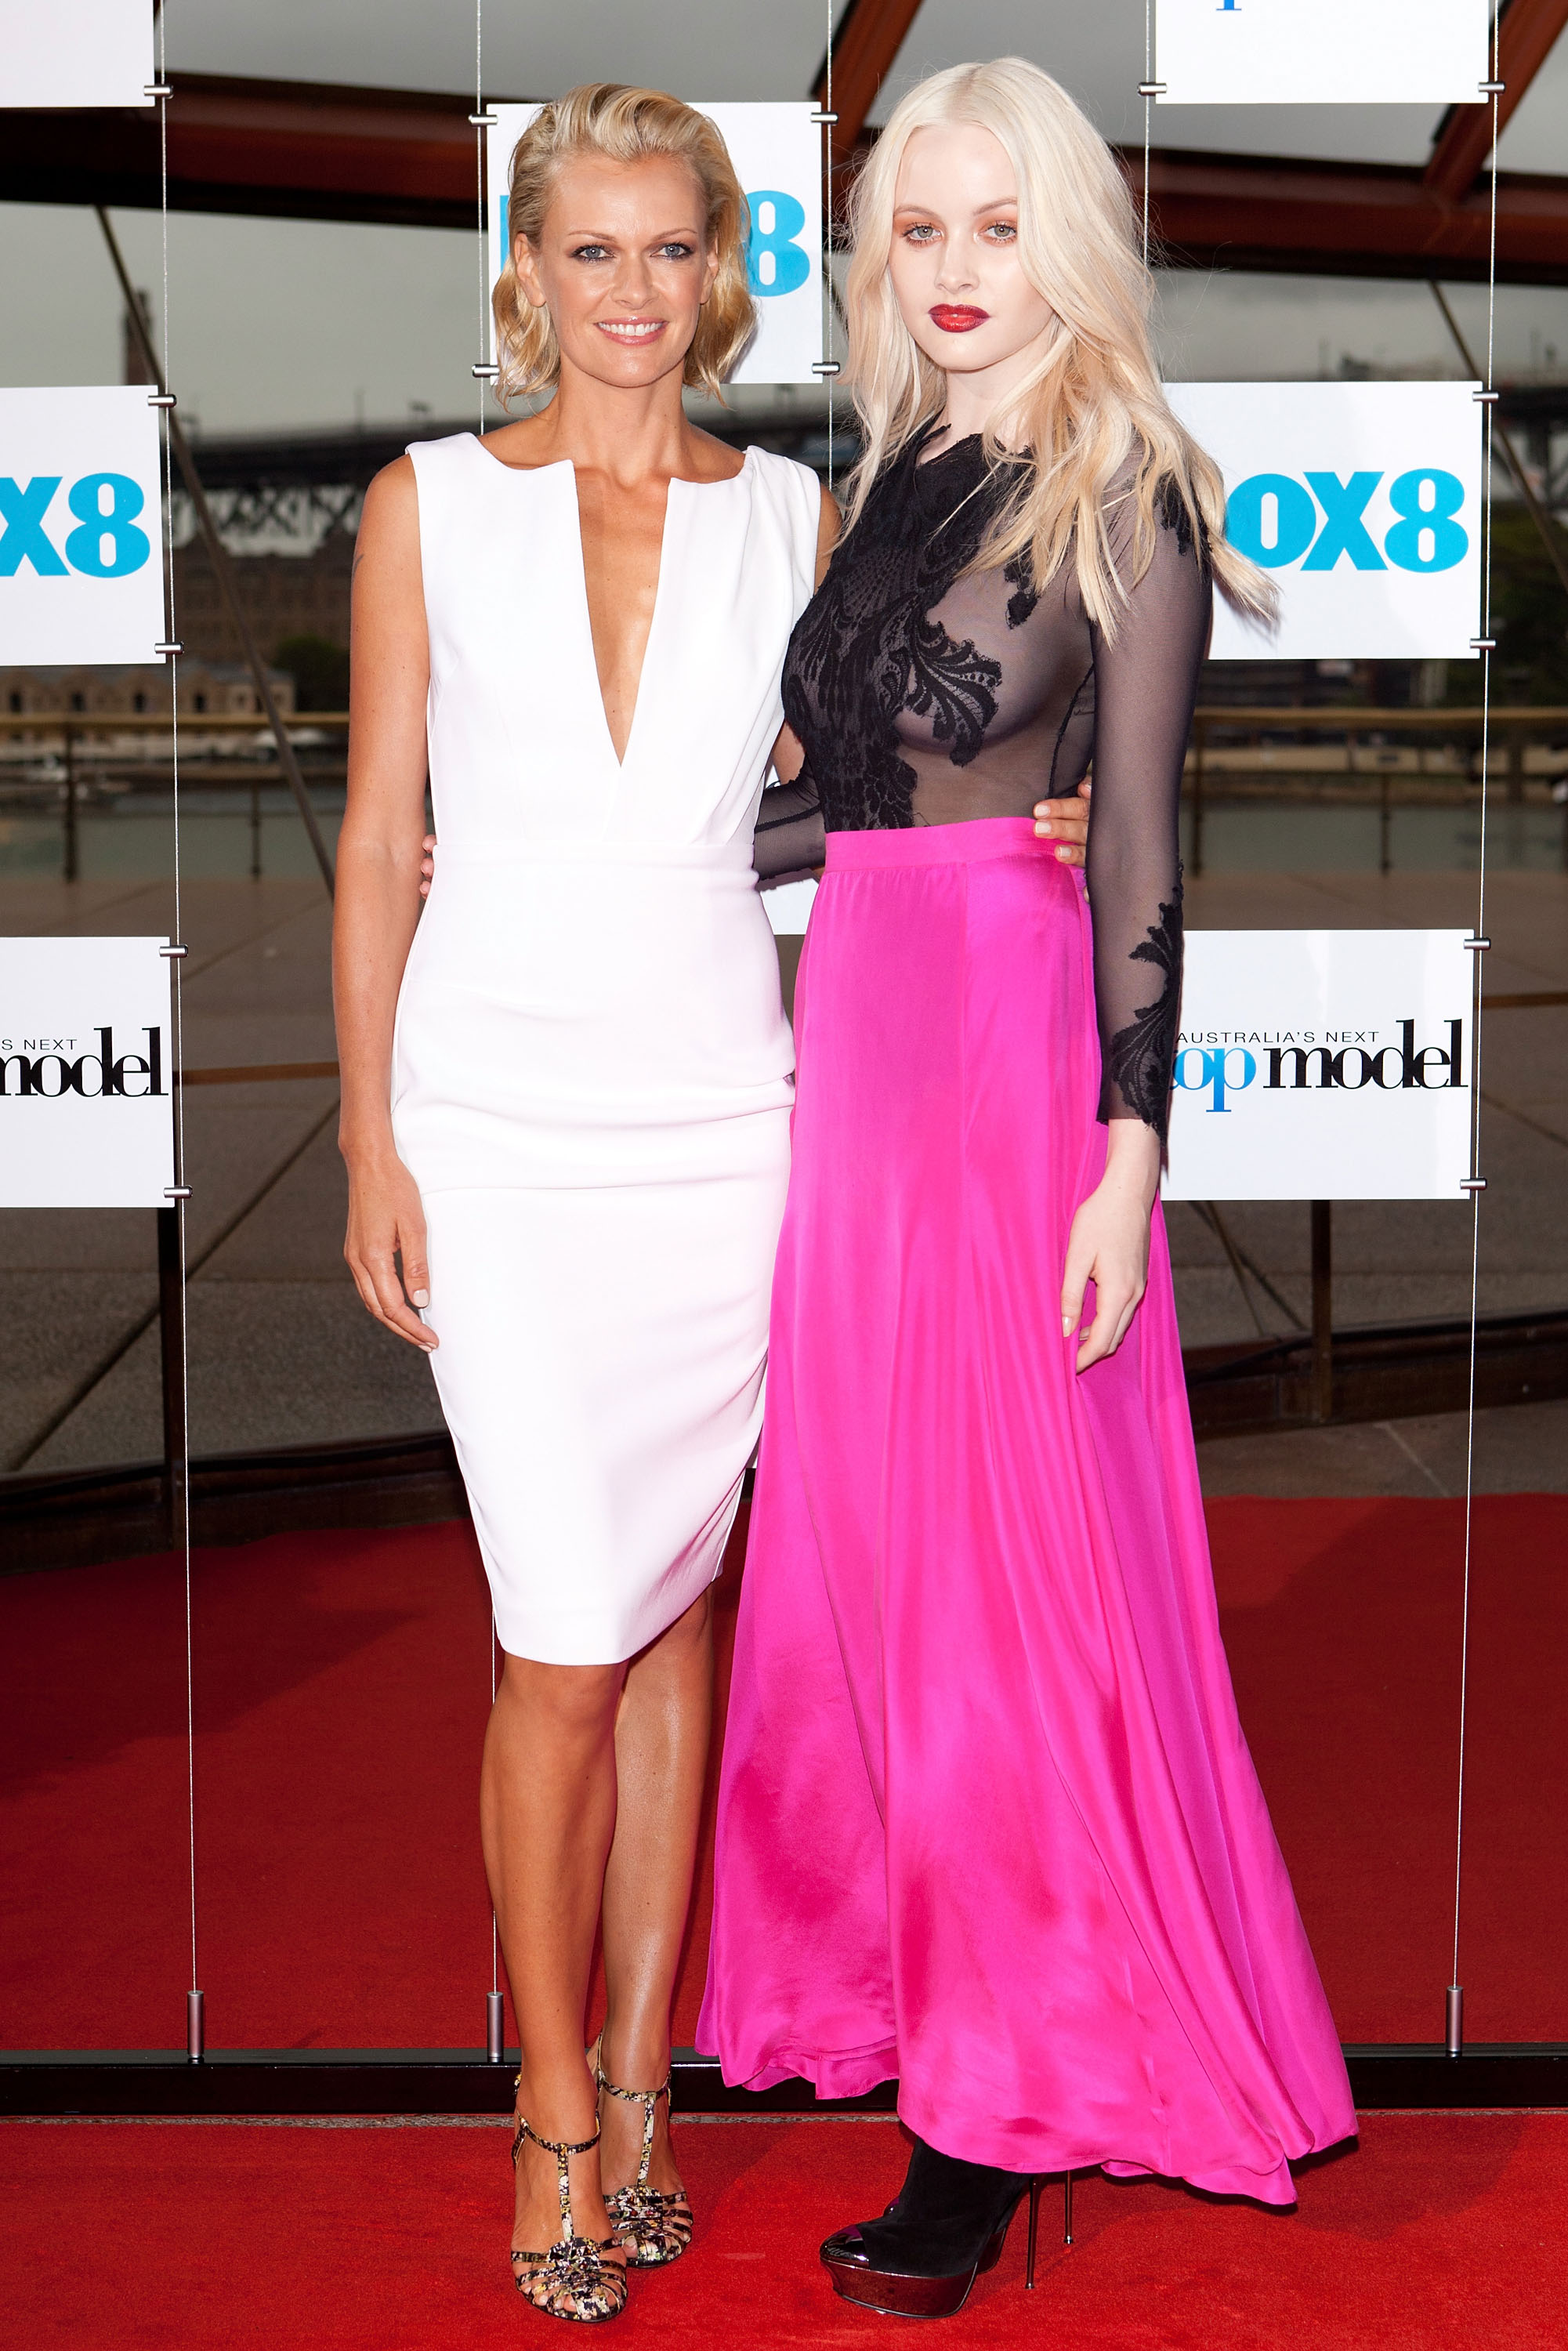 Sarah Murdoch and Simone Holtznagel